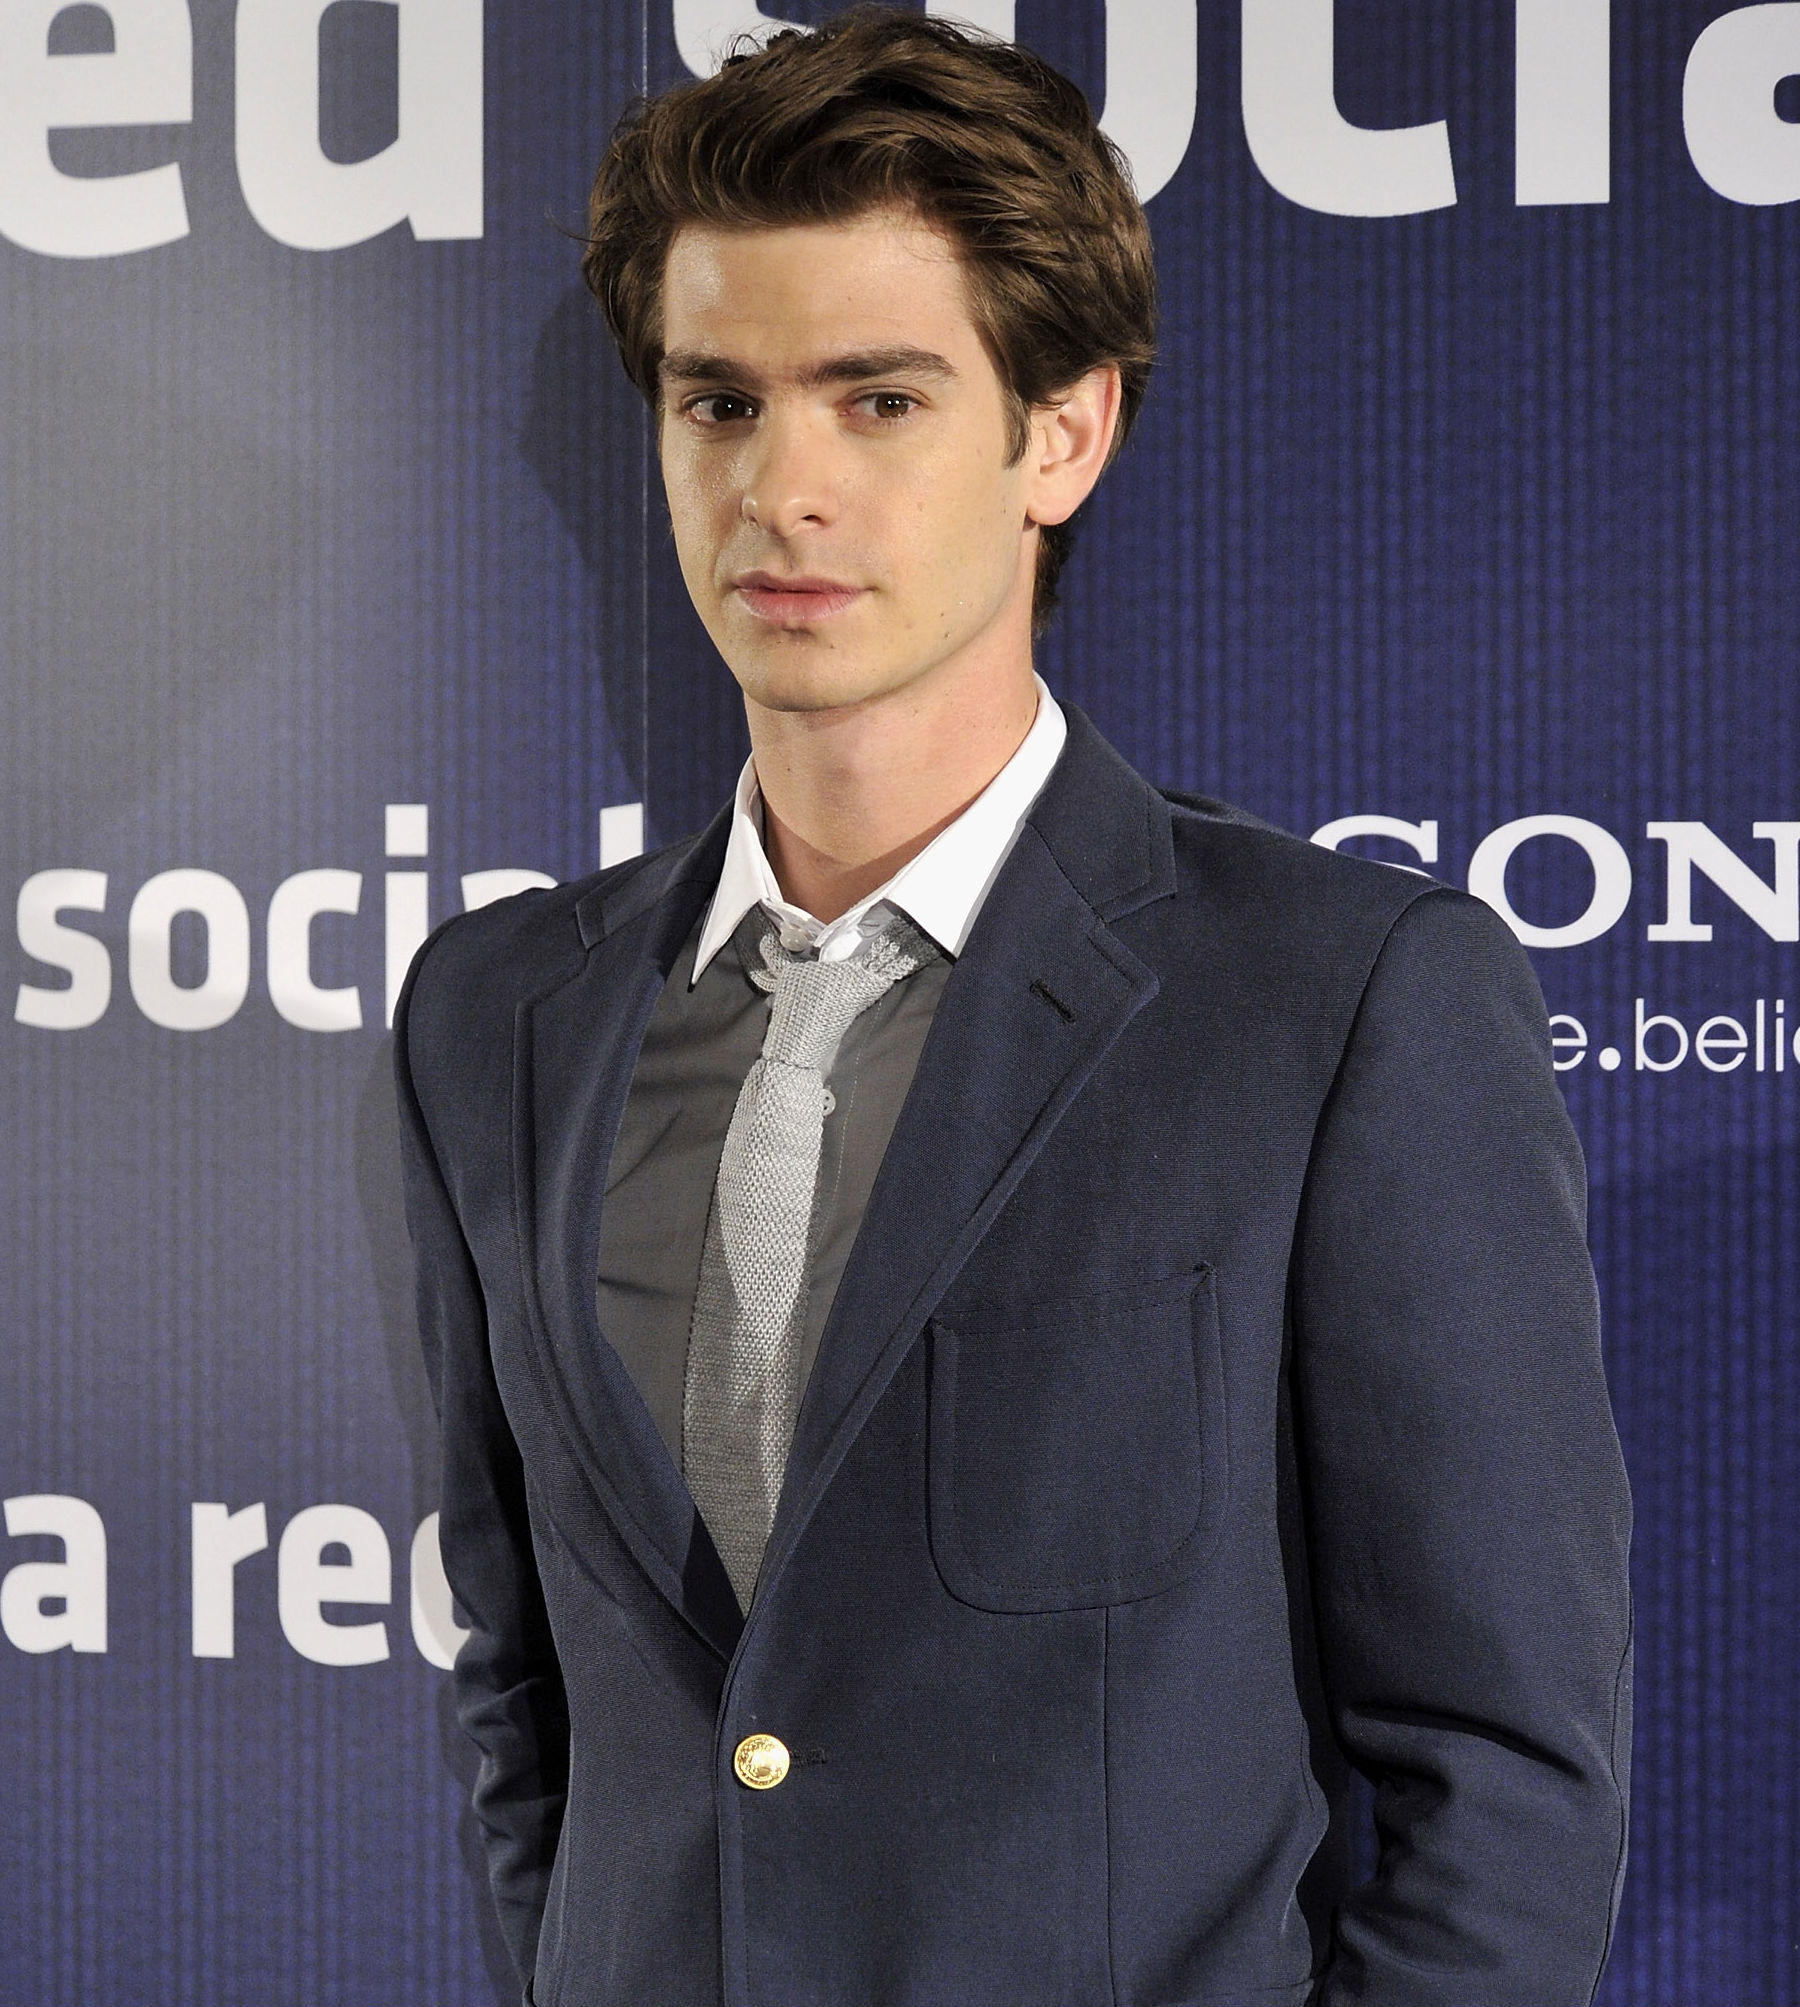 Andrew Garfield Getting Buff for 'Spider-Man'